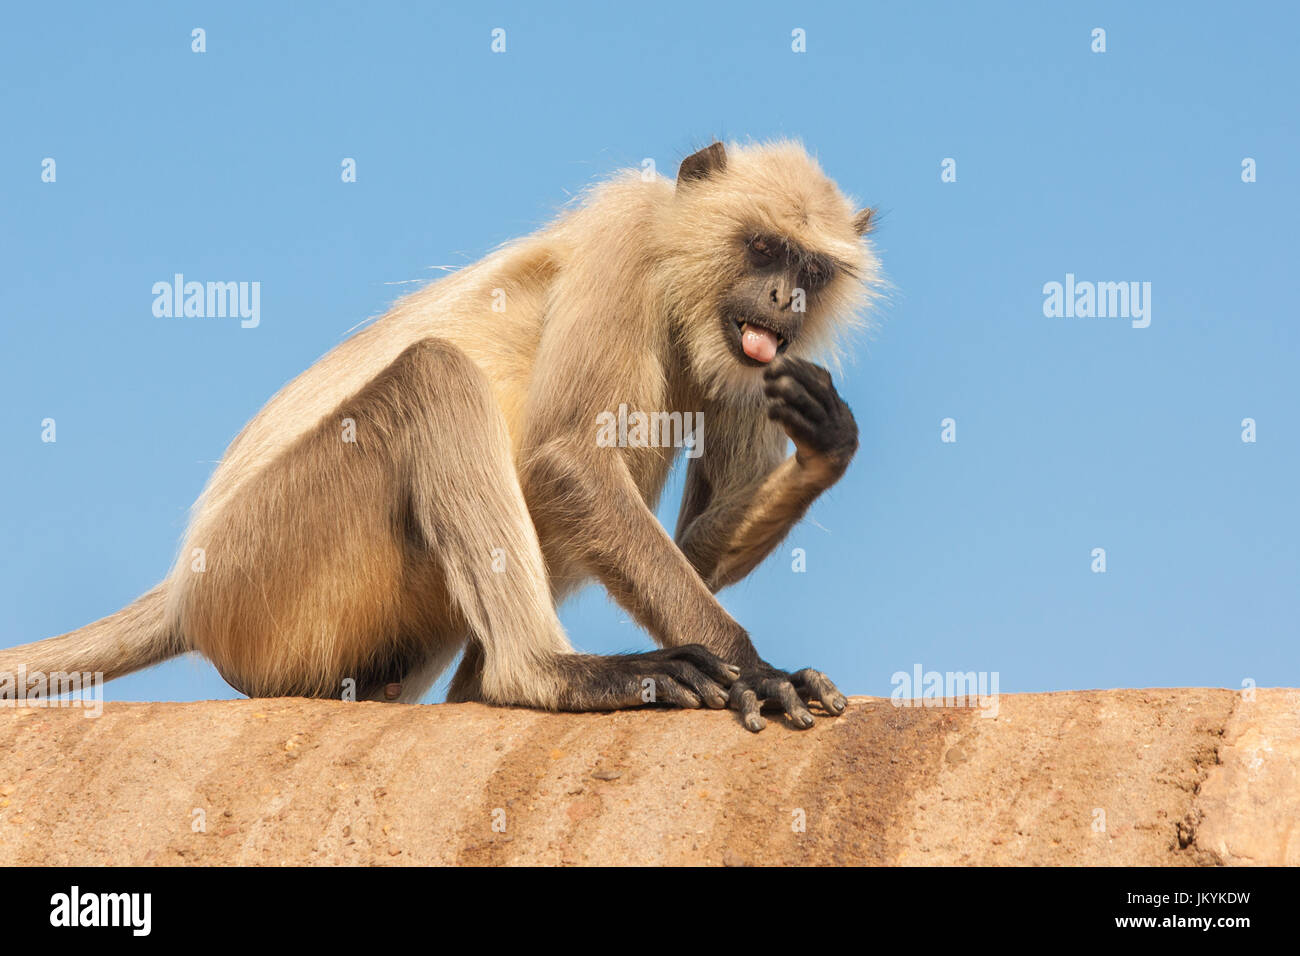 Gray langurs or Hanuman langurs, the most widespread langurs of the Indian Subcontinent, are a group of Old World - Stock Image